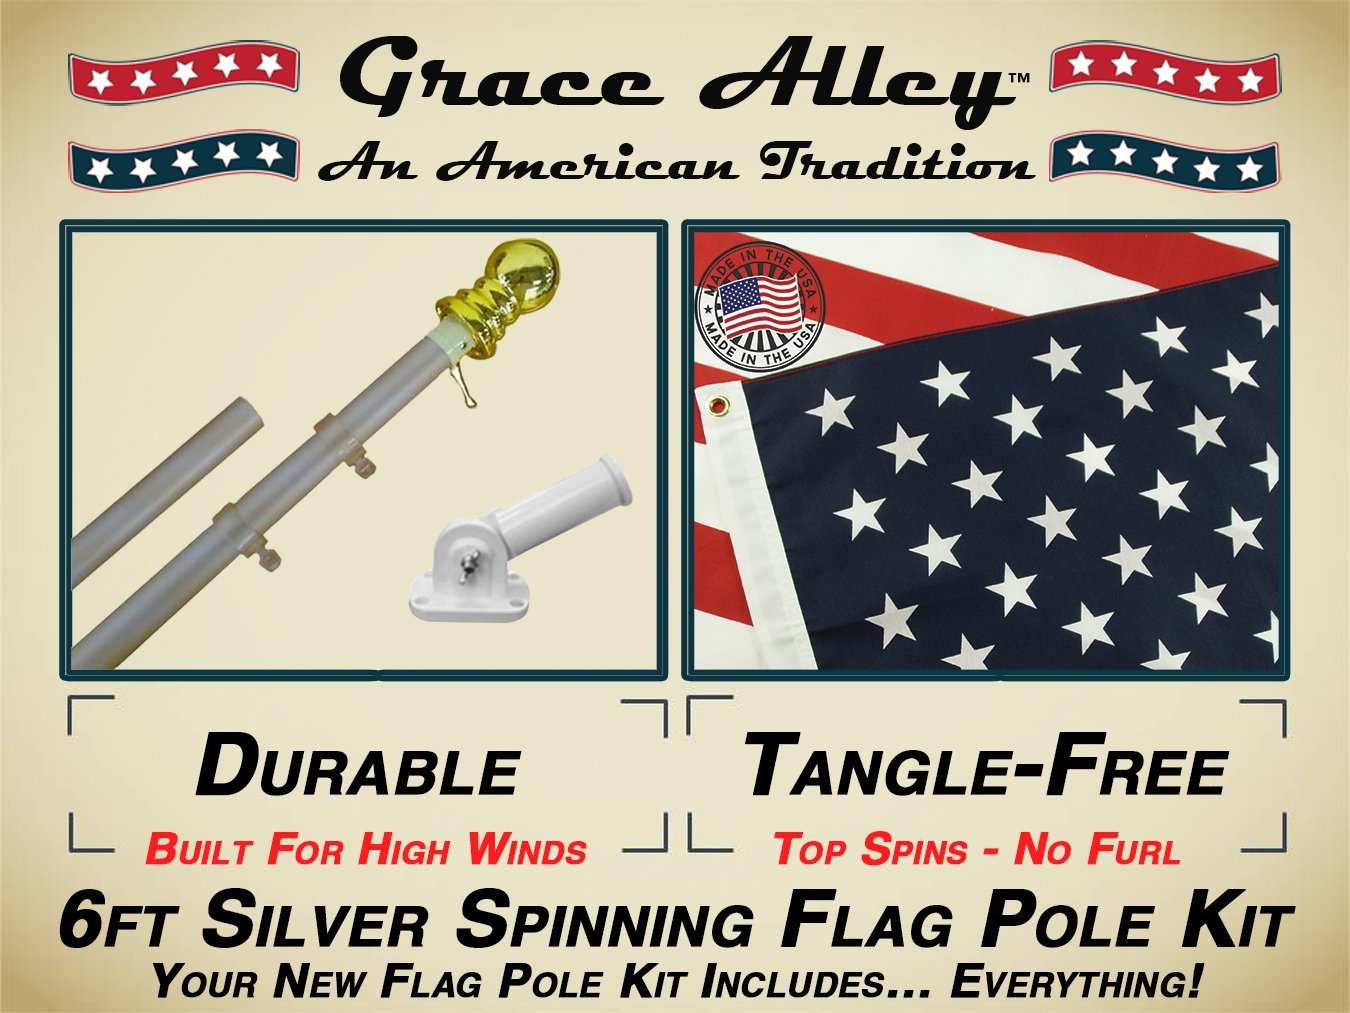 Flag Pole Kit: Tangle Free Flag Pole Kit includes US Flag - Made in USA, Outdoor Flag Pole and Flag Pole Bracket. Great for Residential or Commercial. Brushed Aluminum Flag Pole Kit by Grace Alley.